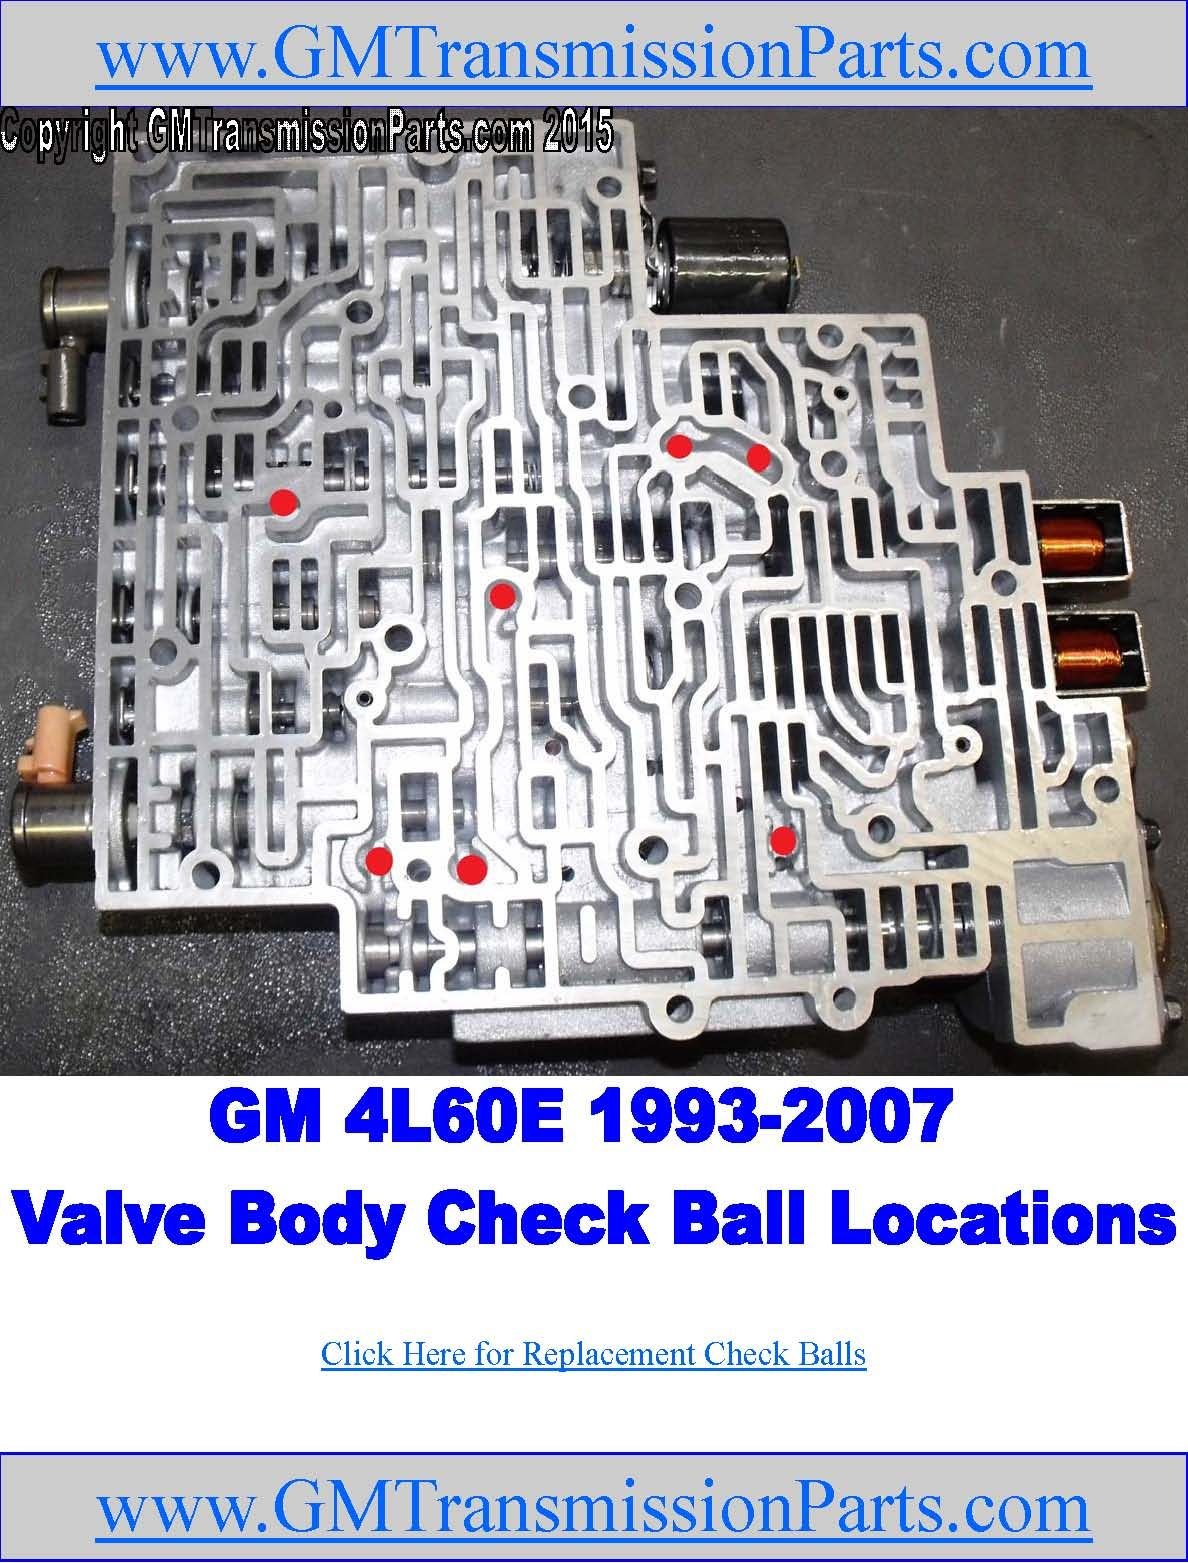 hight resolution of check ball locations in gm s 4l60e transmission valve bodies there are a total of 7 check balls used in valve bodies 1993 2007 get replacement balls from